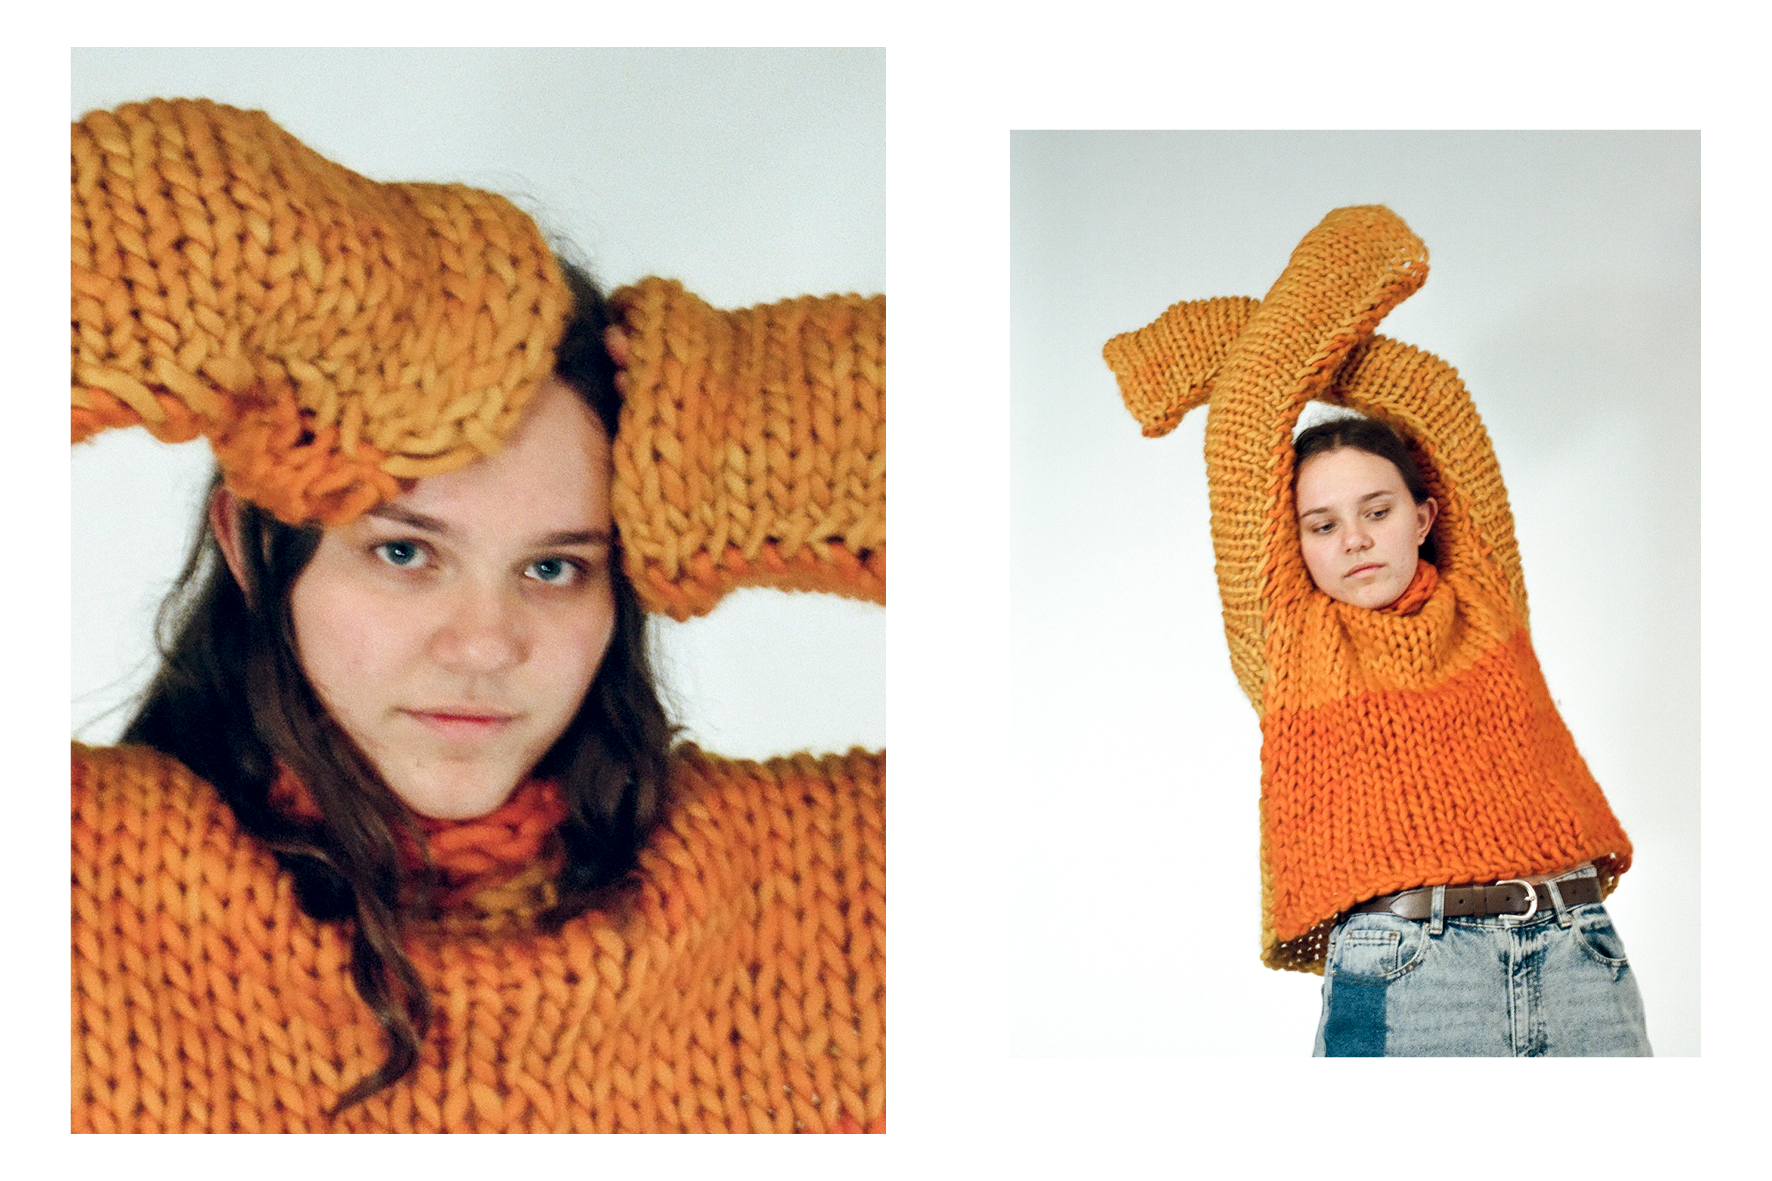 Sasha wears sweater from  Bibel .  Photos by James Caswell.  Styled by Sophie Kristjansson and Kate Evans.  Creative direction by Cassie Dimitroff.